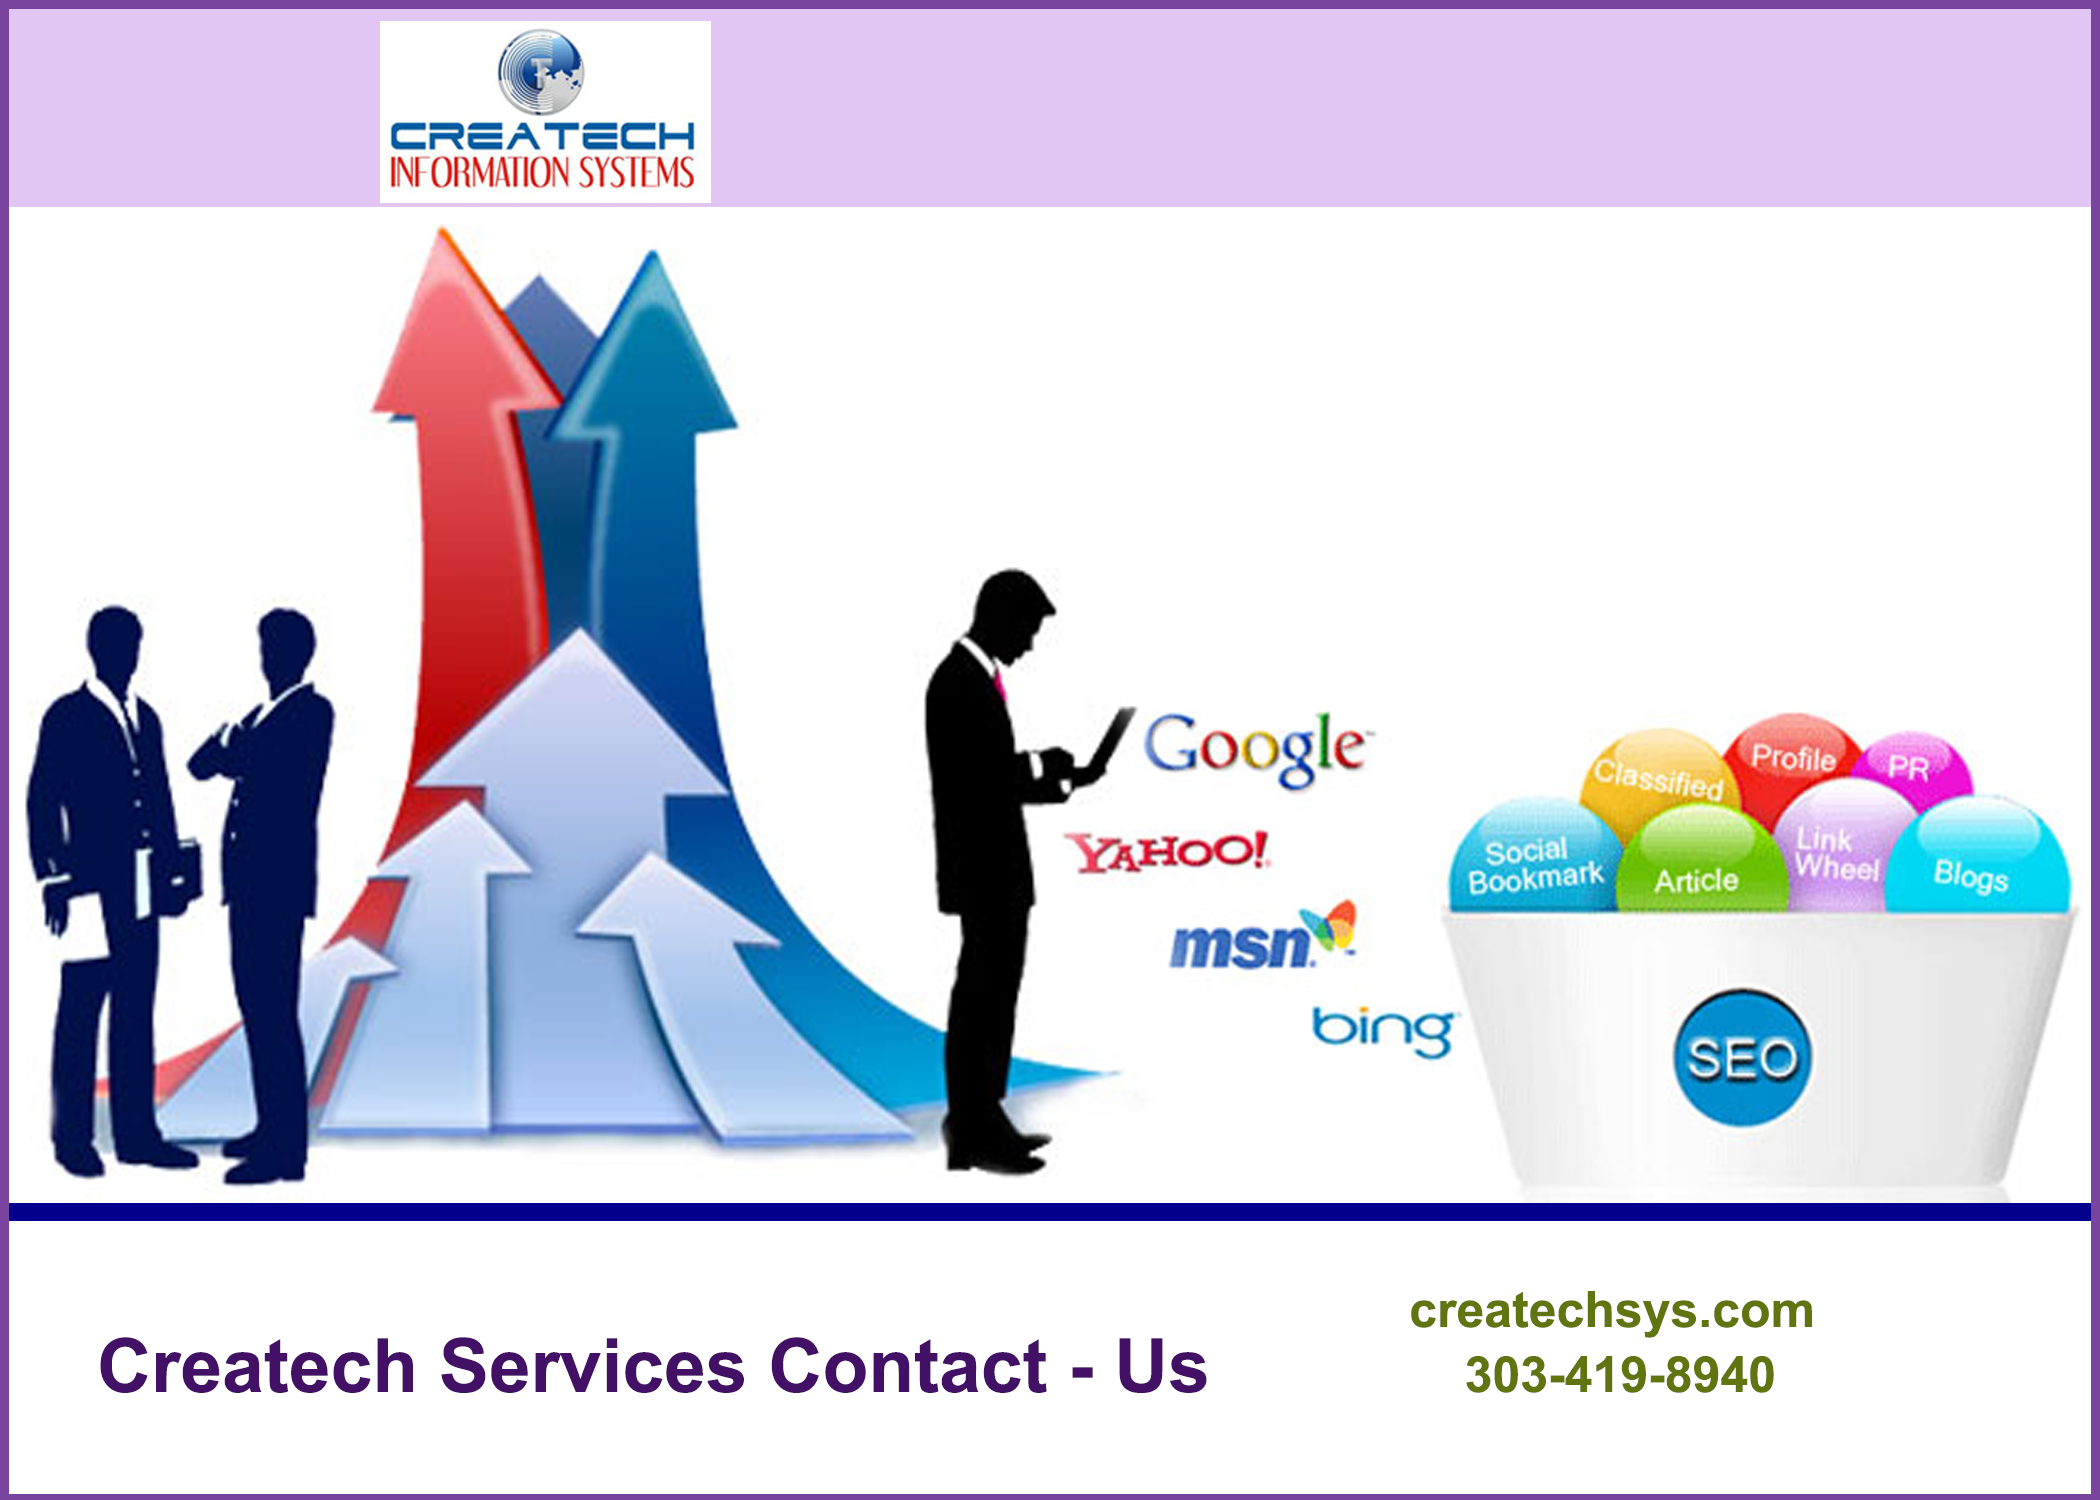 For Best Seo Web Marketing Ppc Web Development Services In Denver Contact Createch Marketing Company Search Engine Optimization Services Marketing Solution